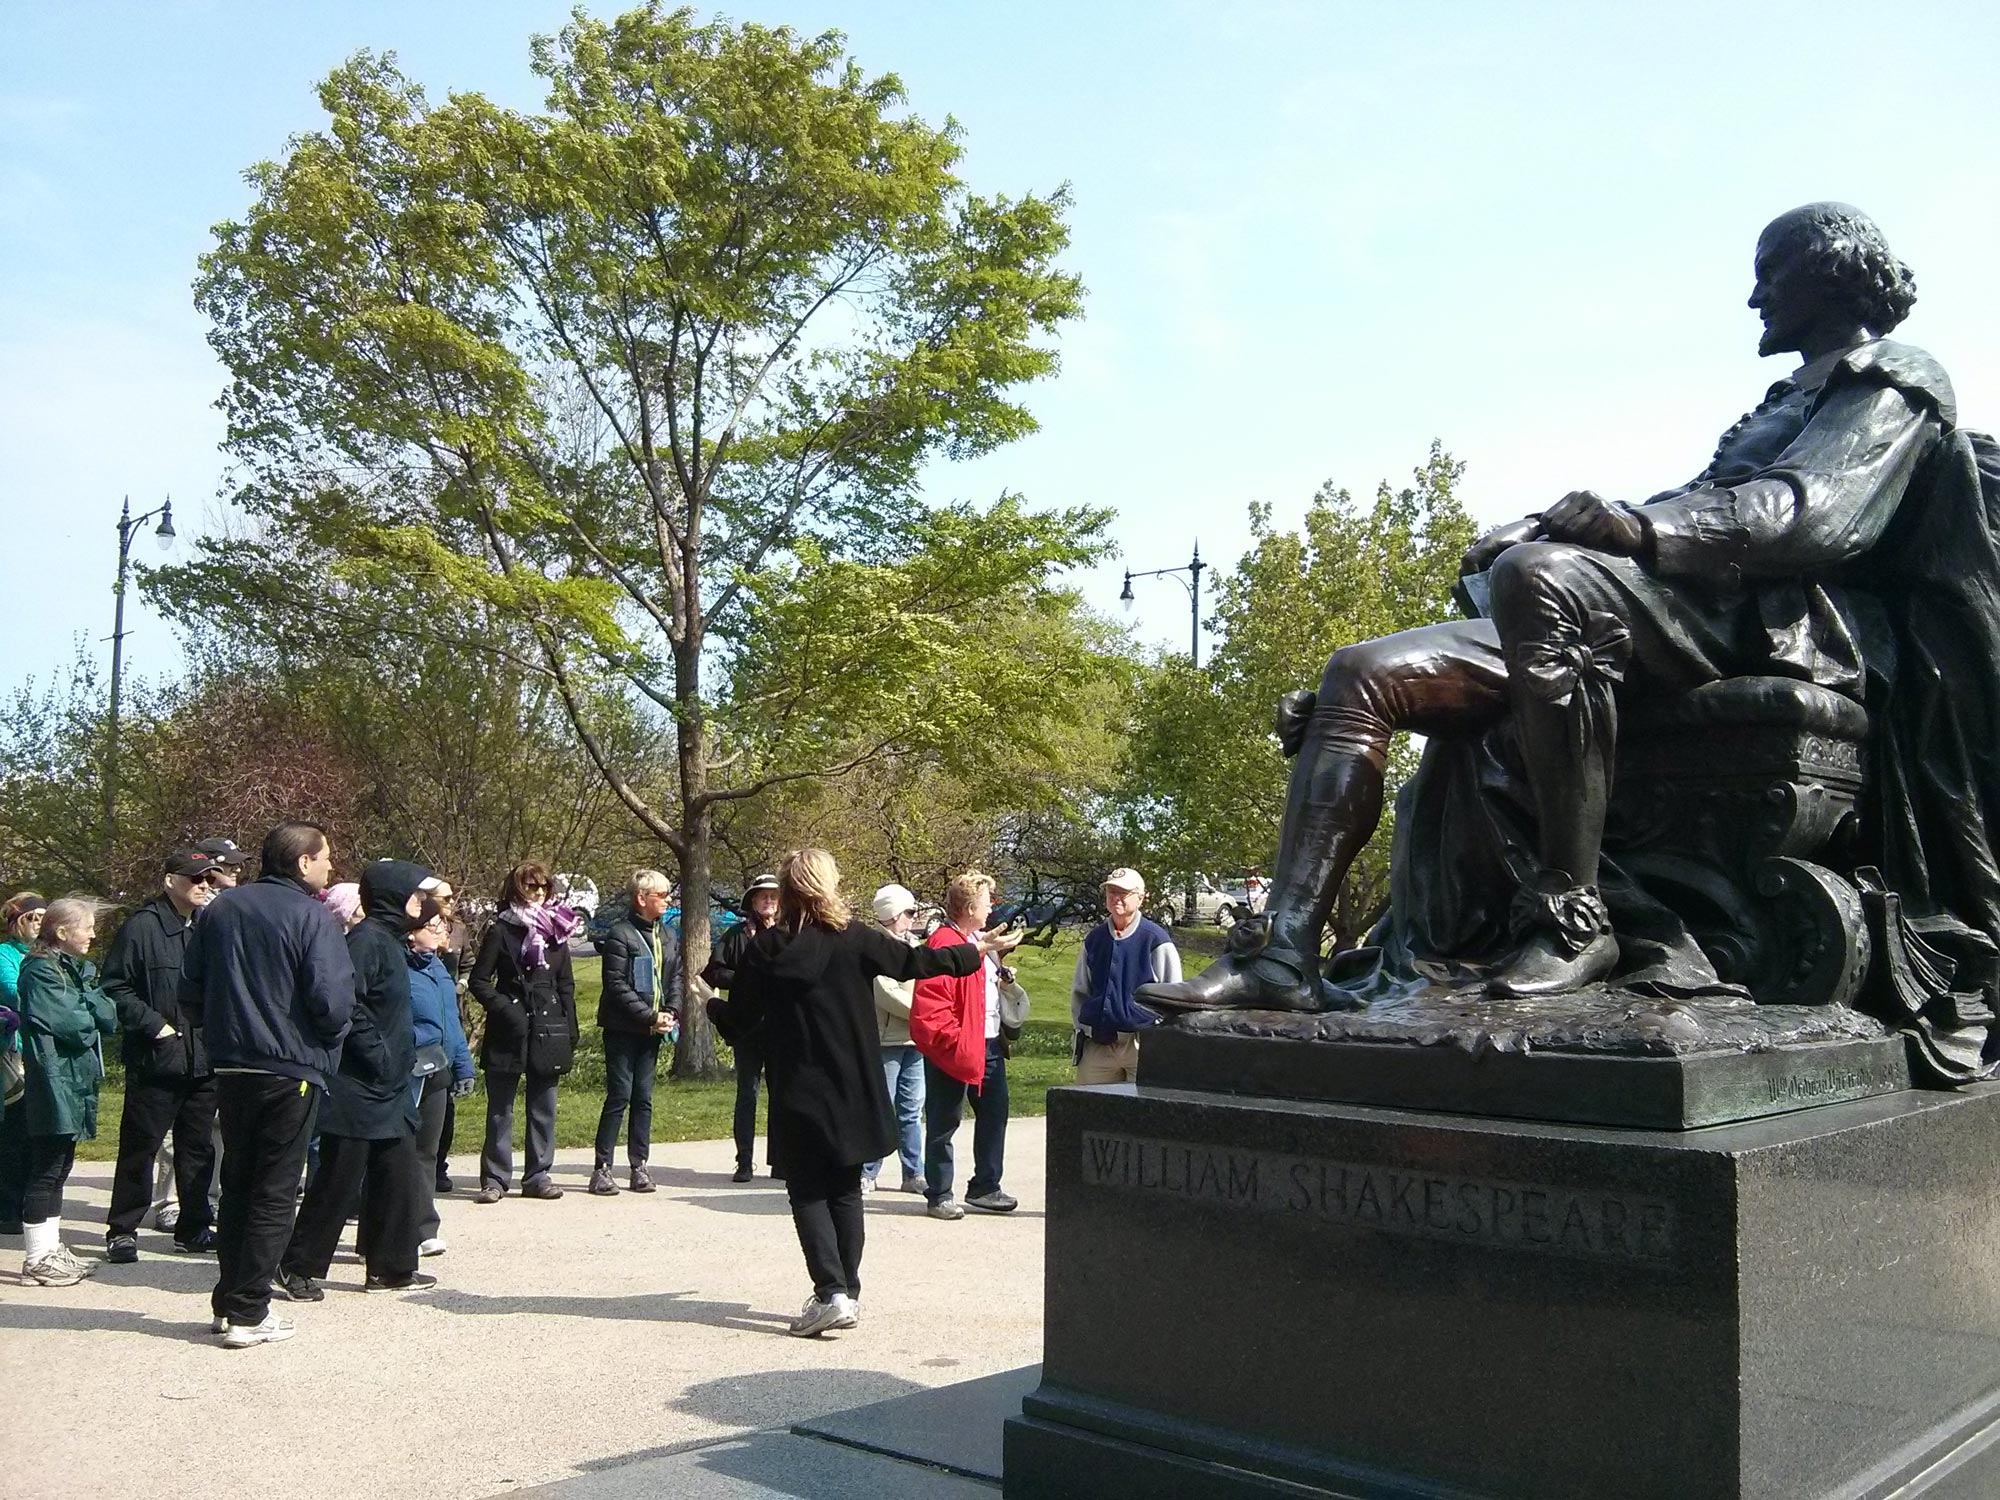 Tour of Lincoln Park features Shakespeare Monument. Photo by Martha Frish